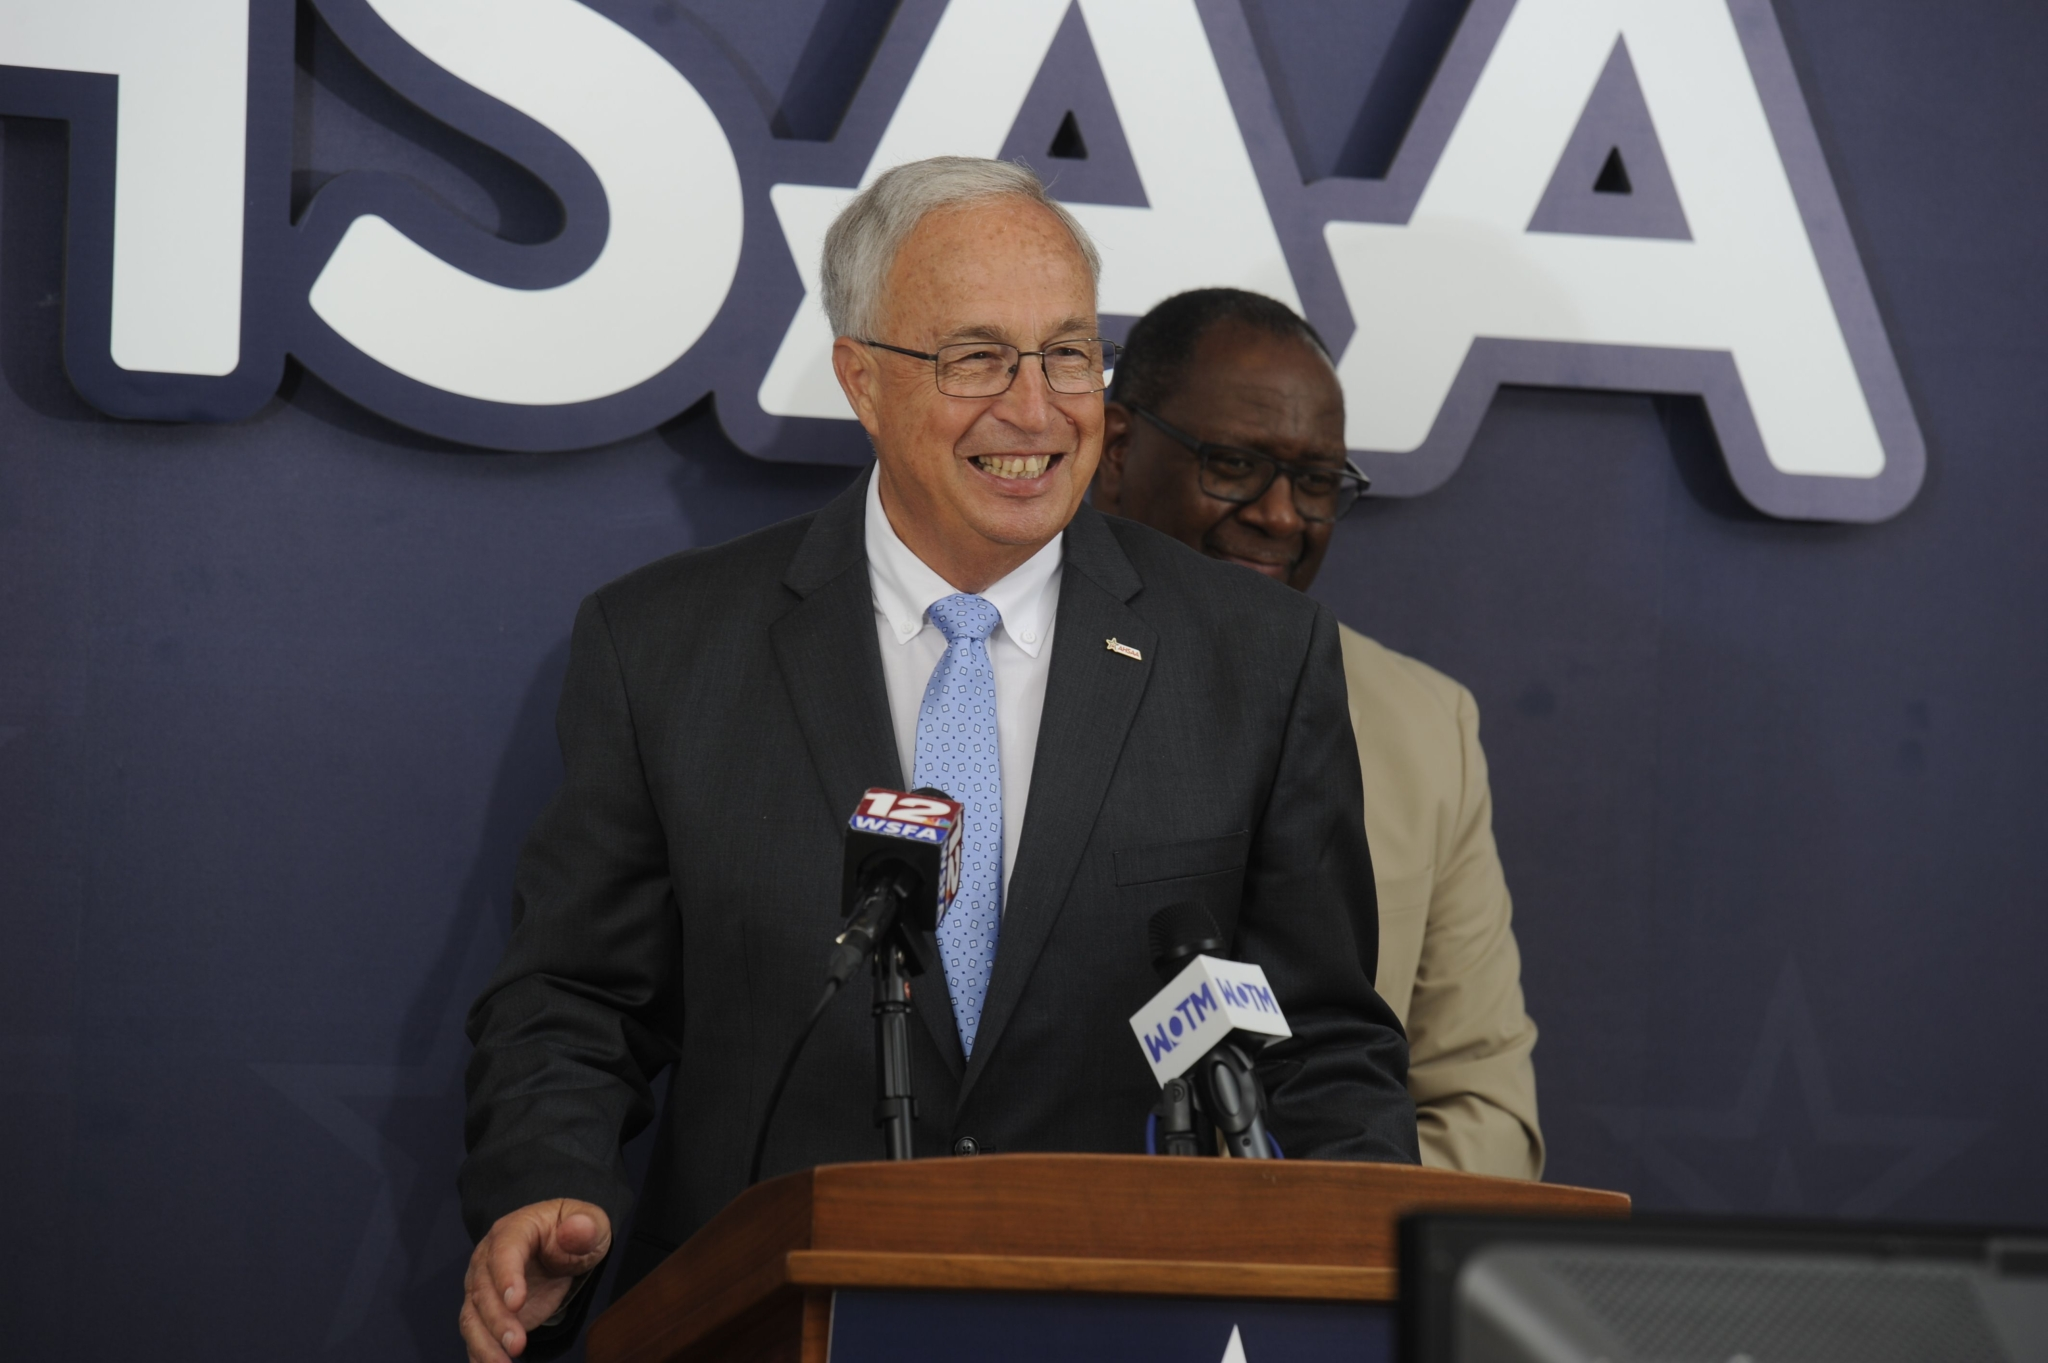 Playing high school sports this year was a blessing says retiring AHSAA Executive Director